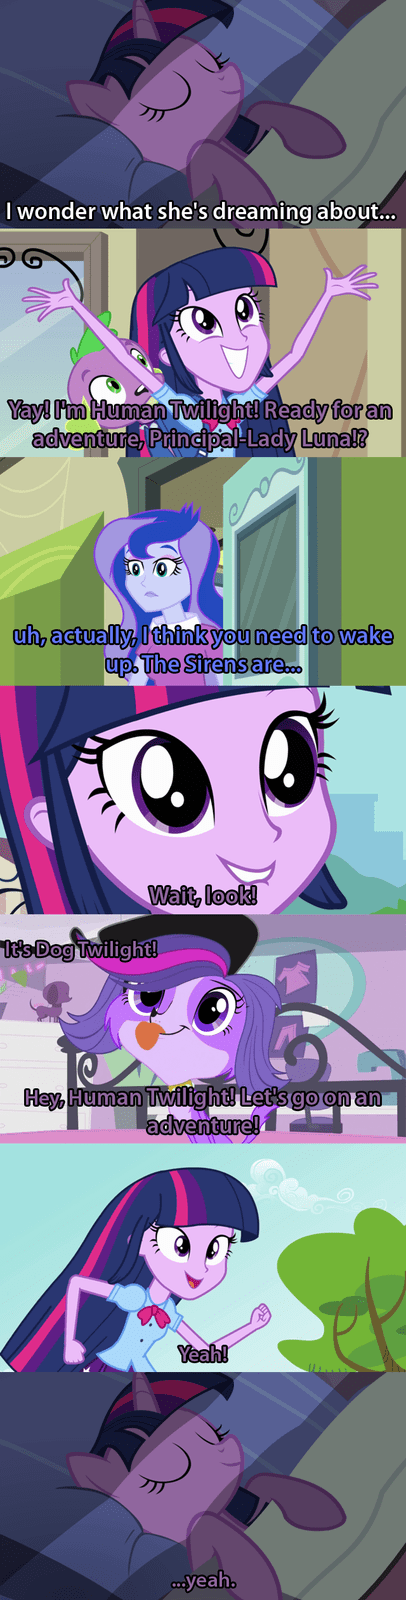 equestria girls twilight sparkle dreams - 8385444096